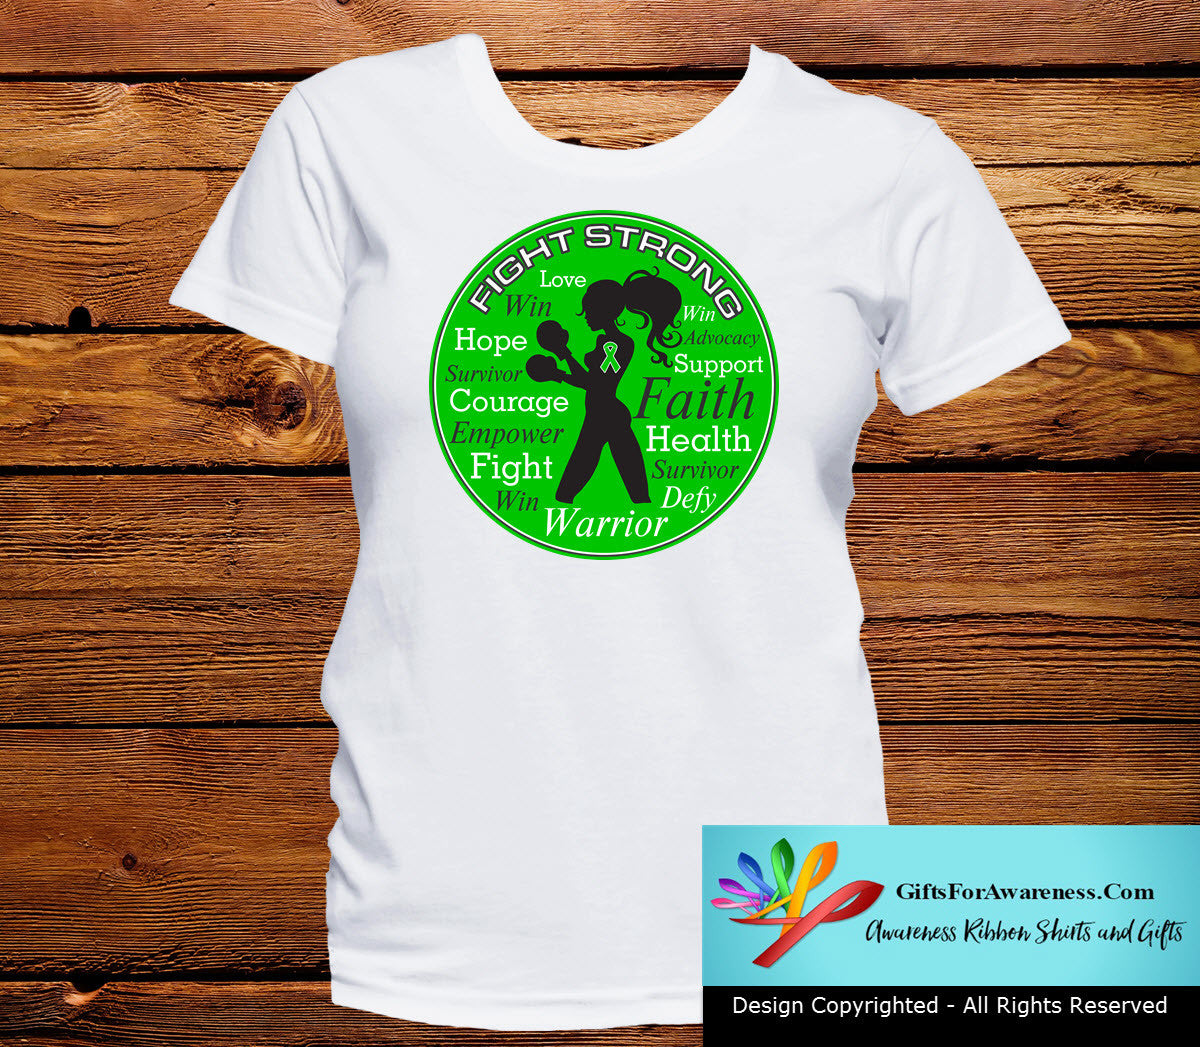 Gastroparesis Fight Strong Motto T-Shirts - GiftsForAwareness